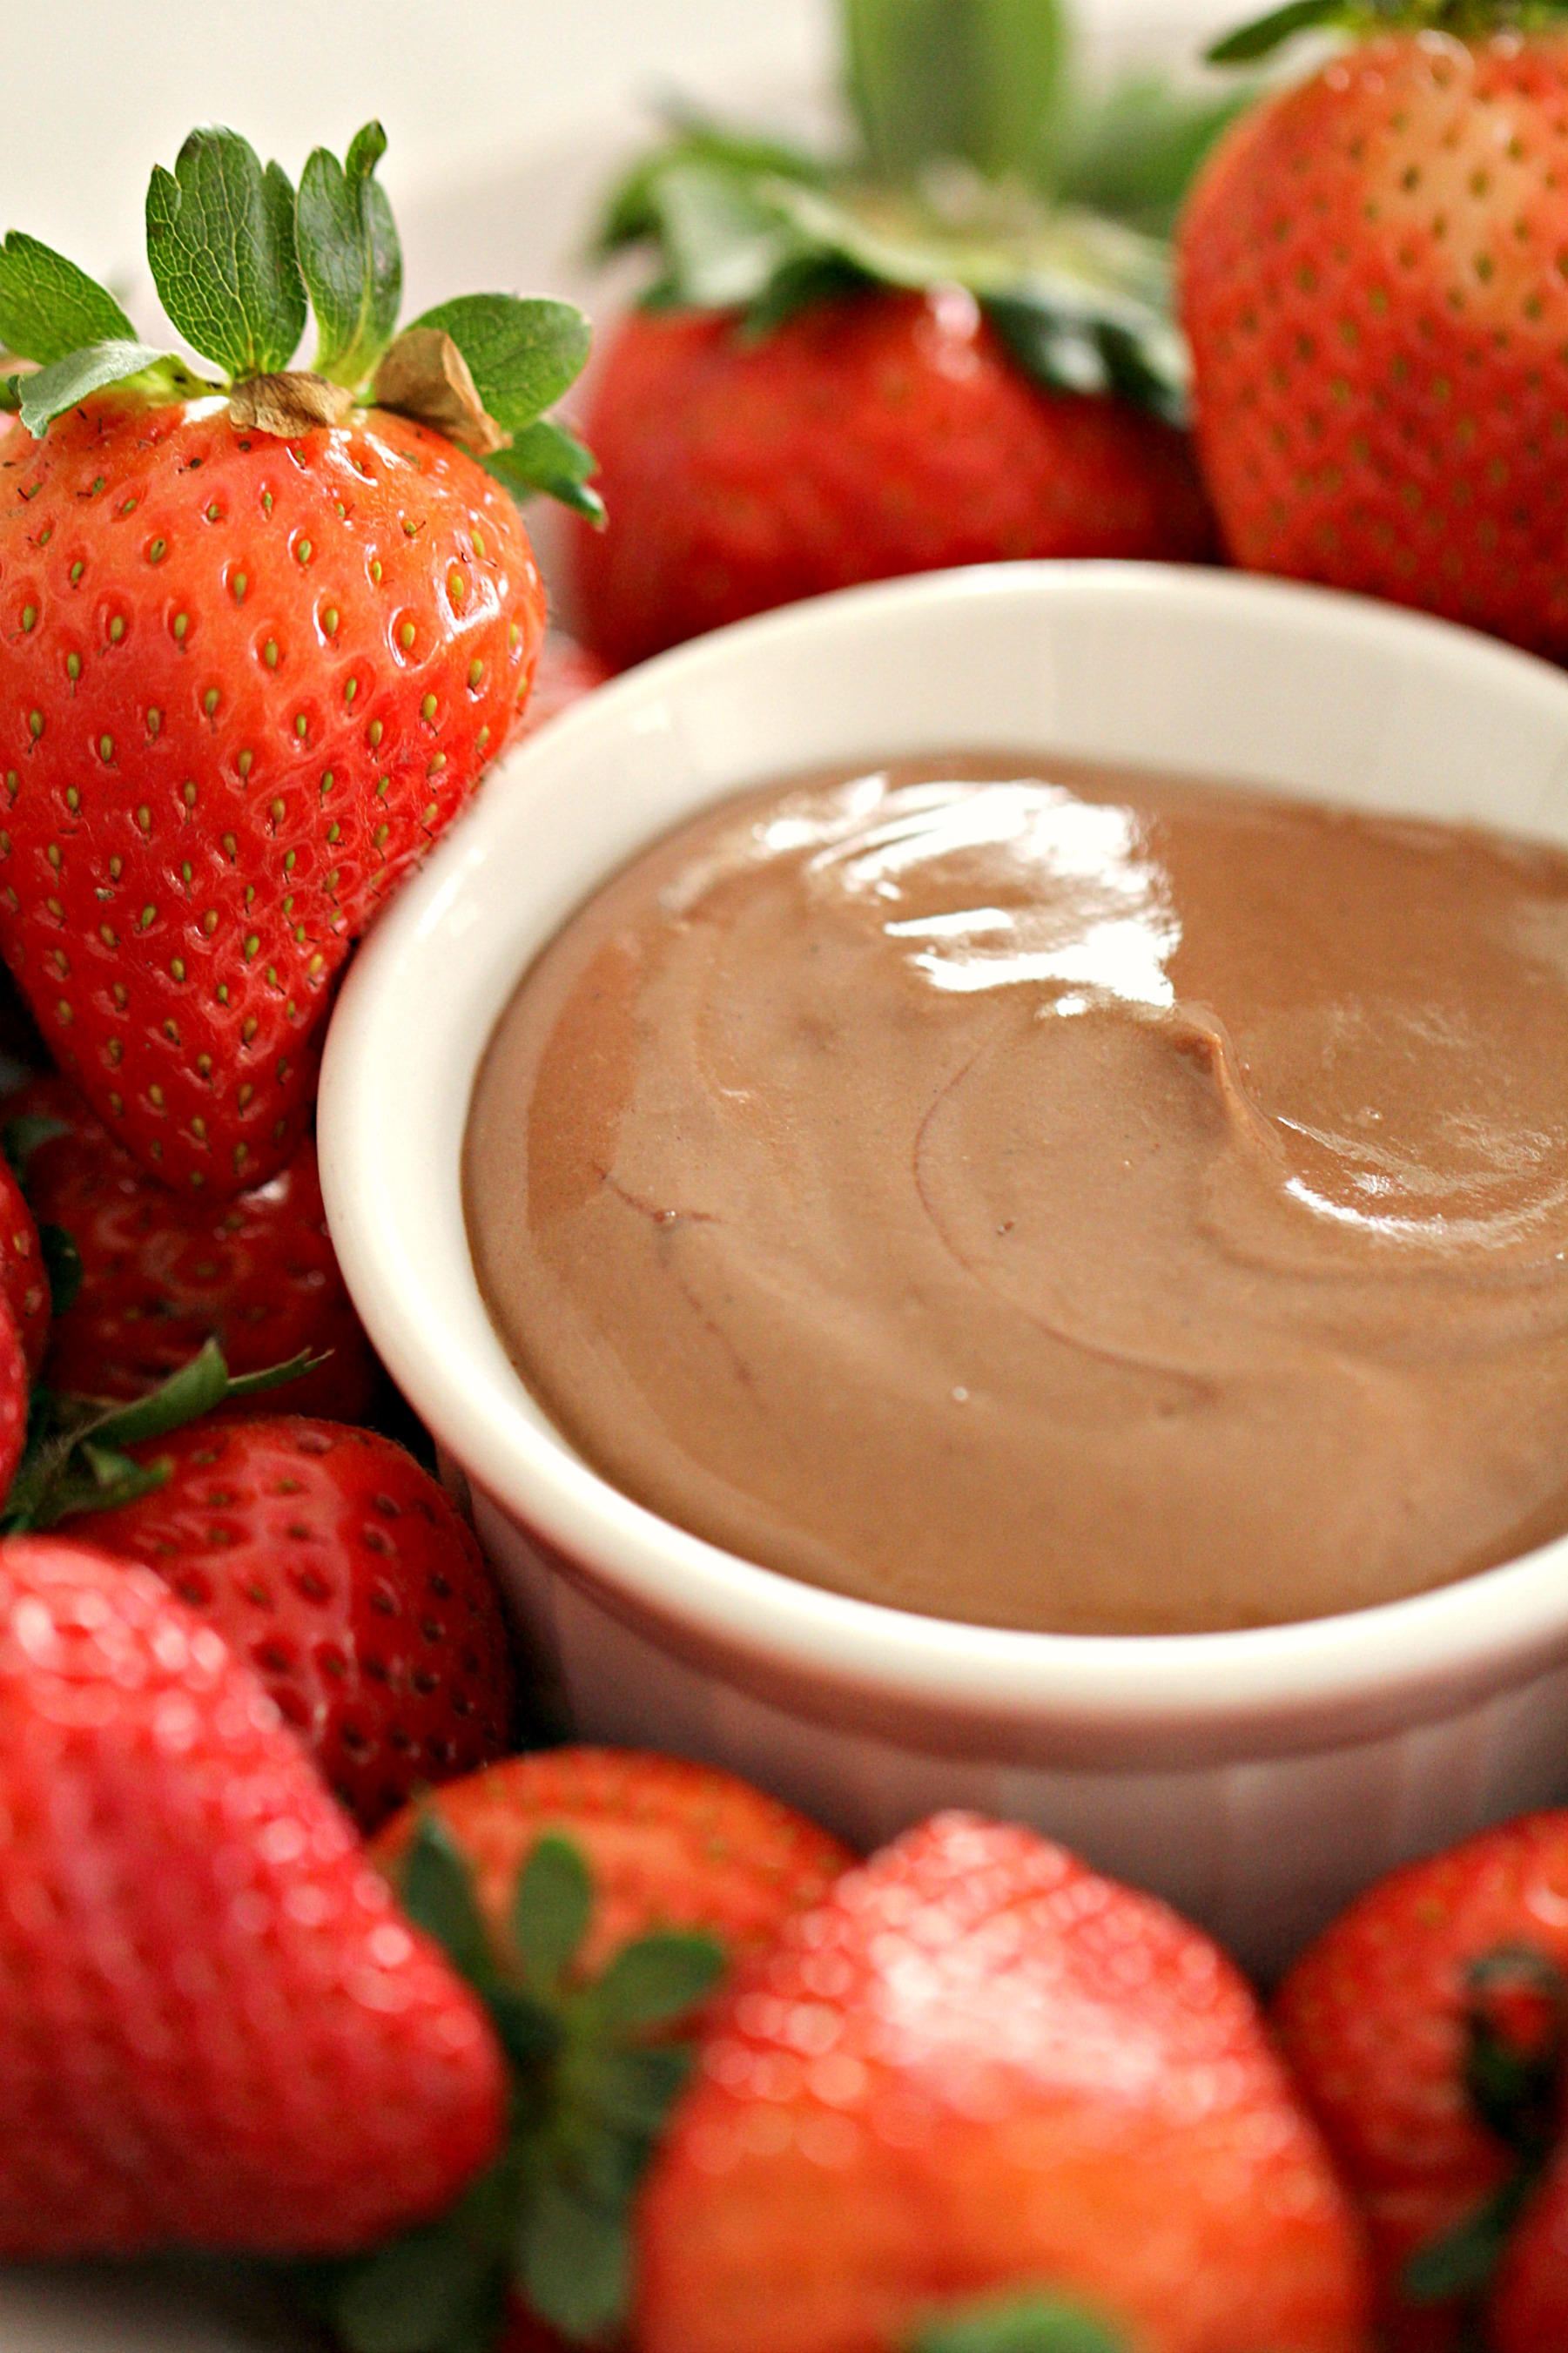 chocolate yogurt fruit dip in a white bowl surrounded by strawberries